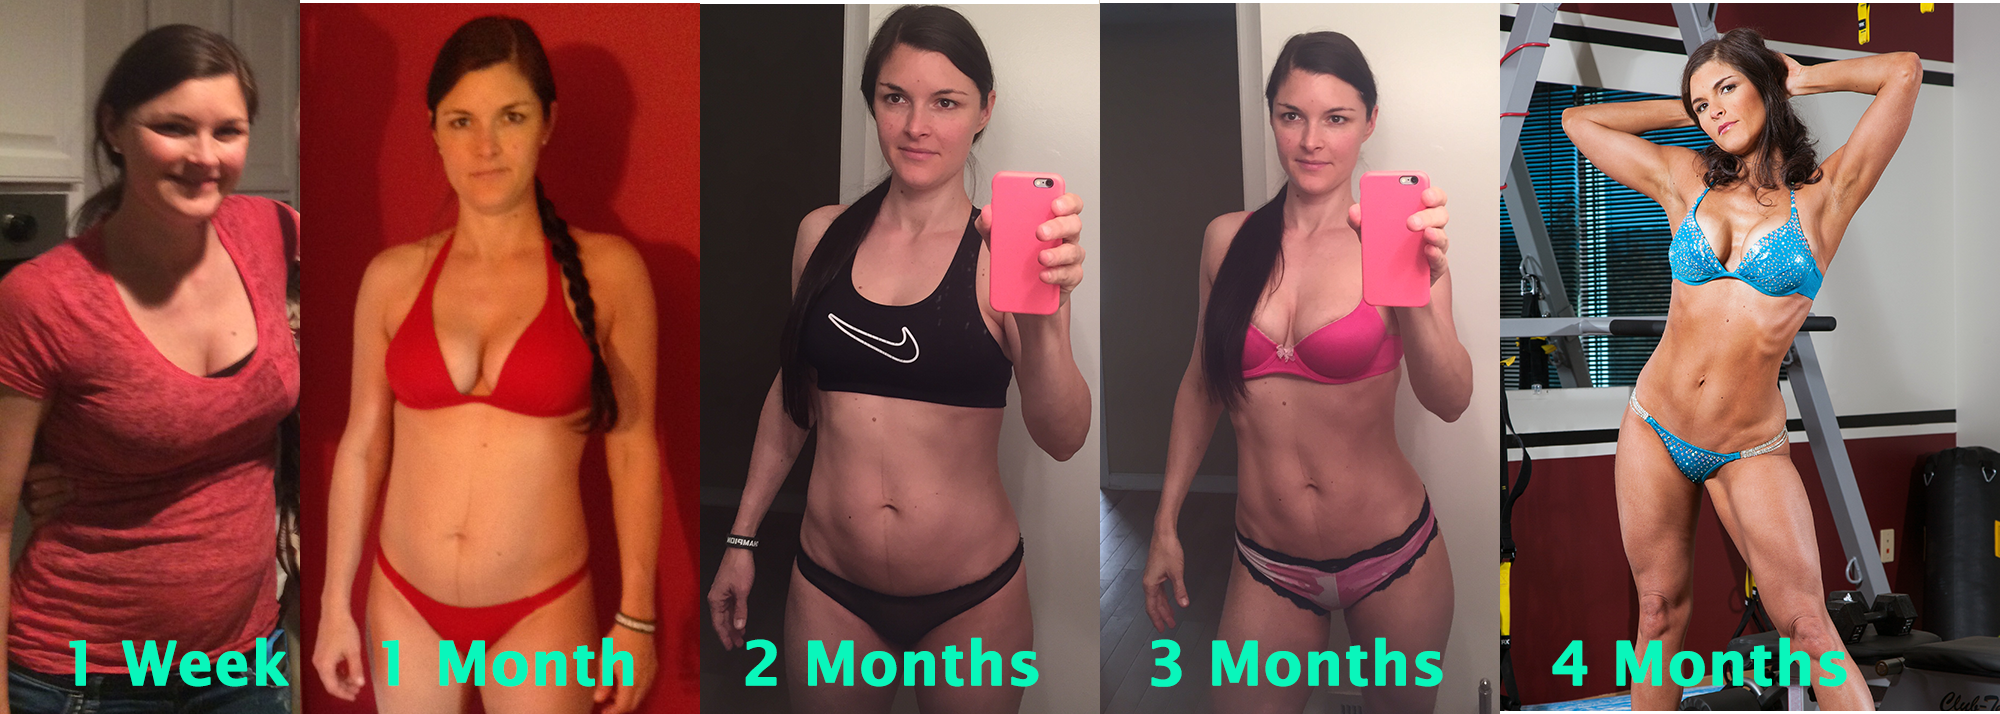 Losing The Baby Weight 4 Months Postpartum April King